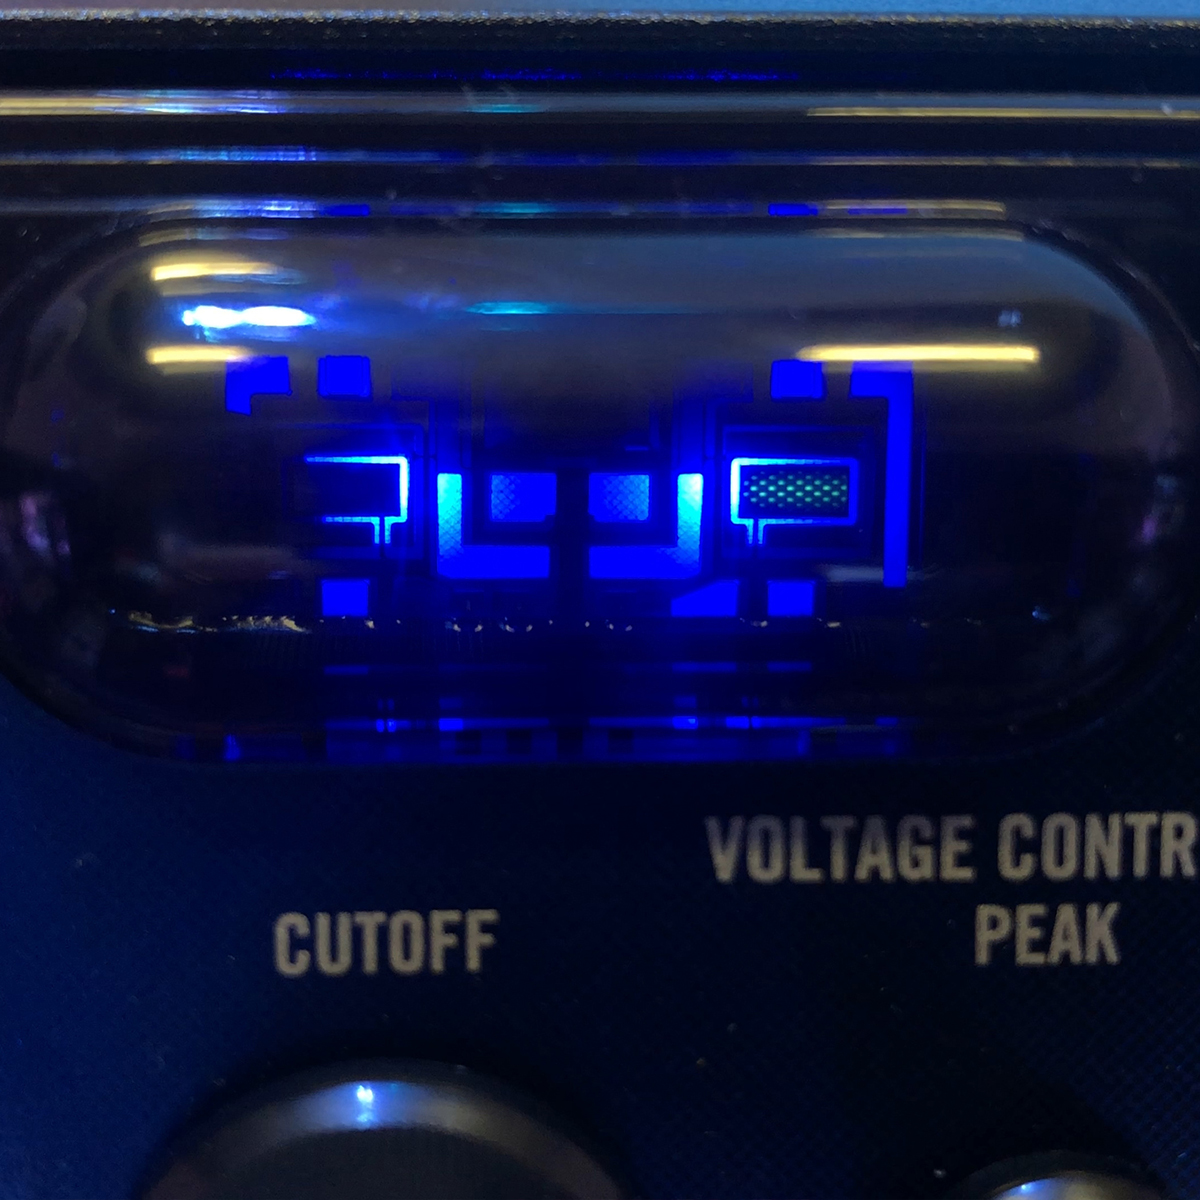 Detail of the Nubass's Nutube VFD-based distortion tube.